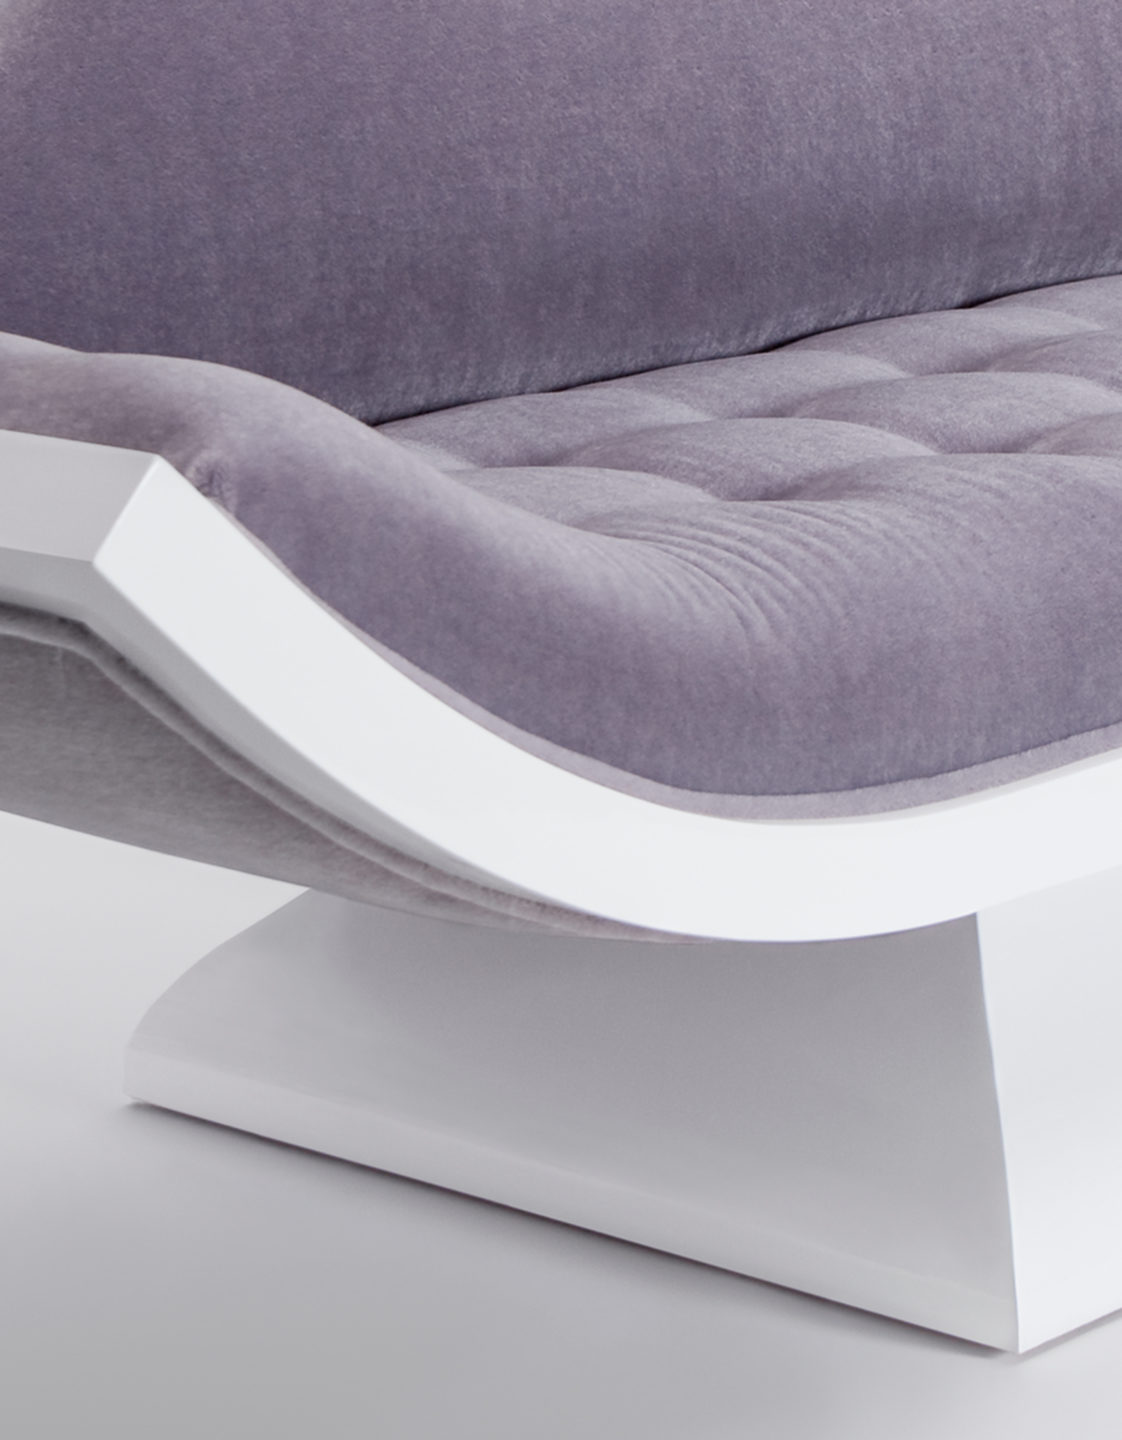 FLOAT-seating-3-nicole-fuller-product-information